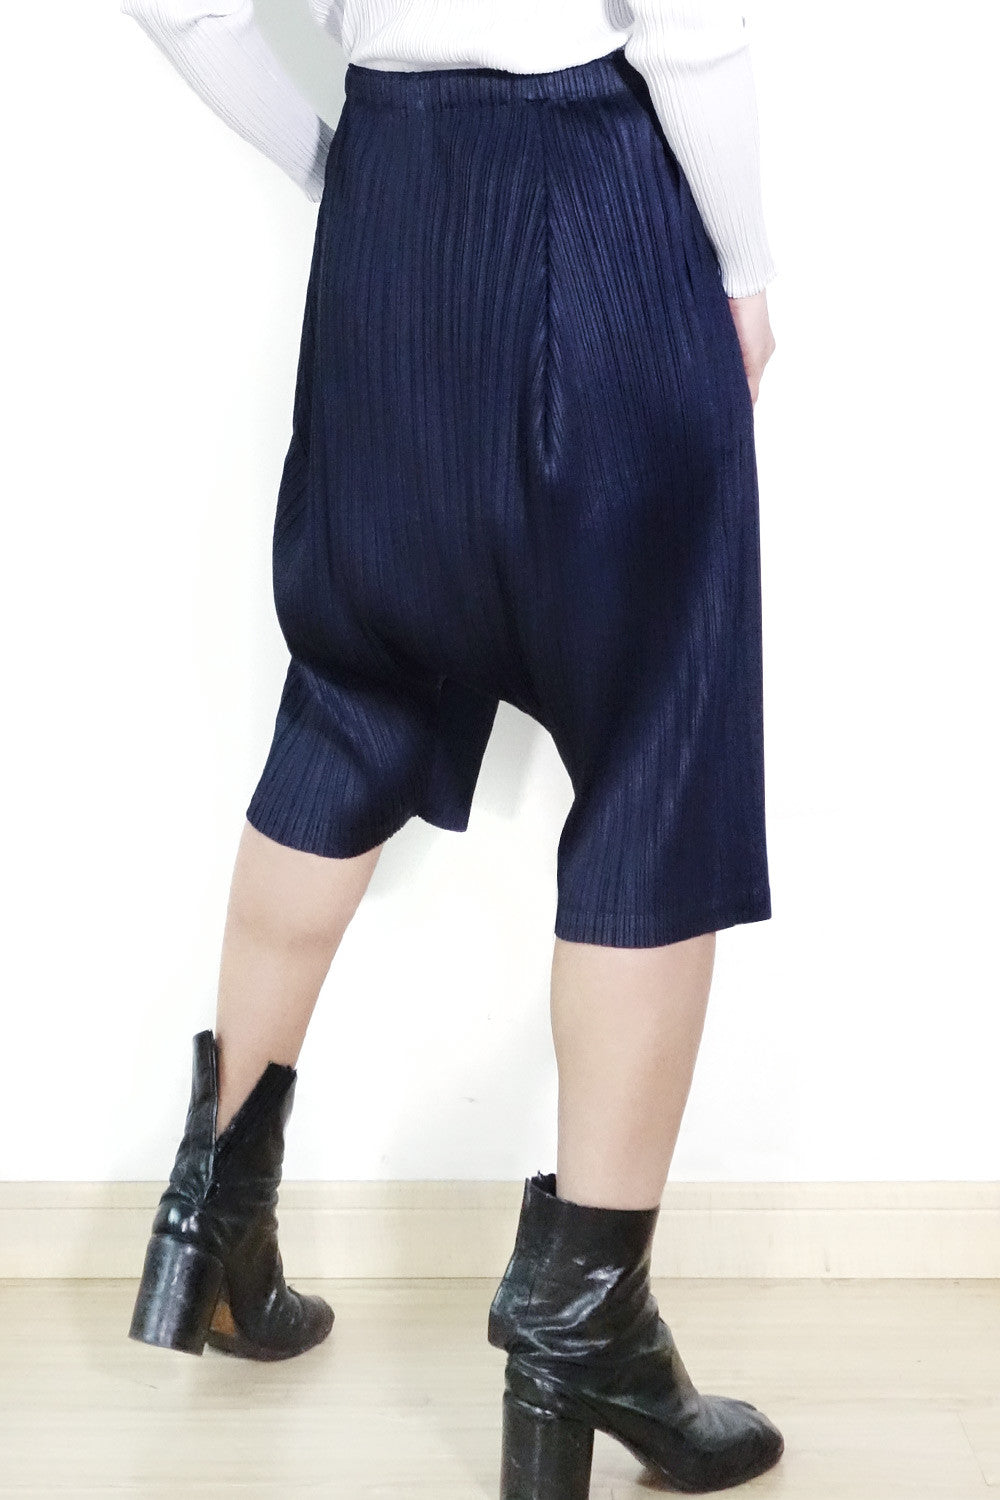 Issey Miyake Pleats Please Drop Crotch Trousers Sz 2